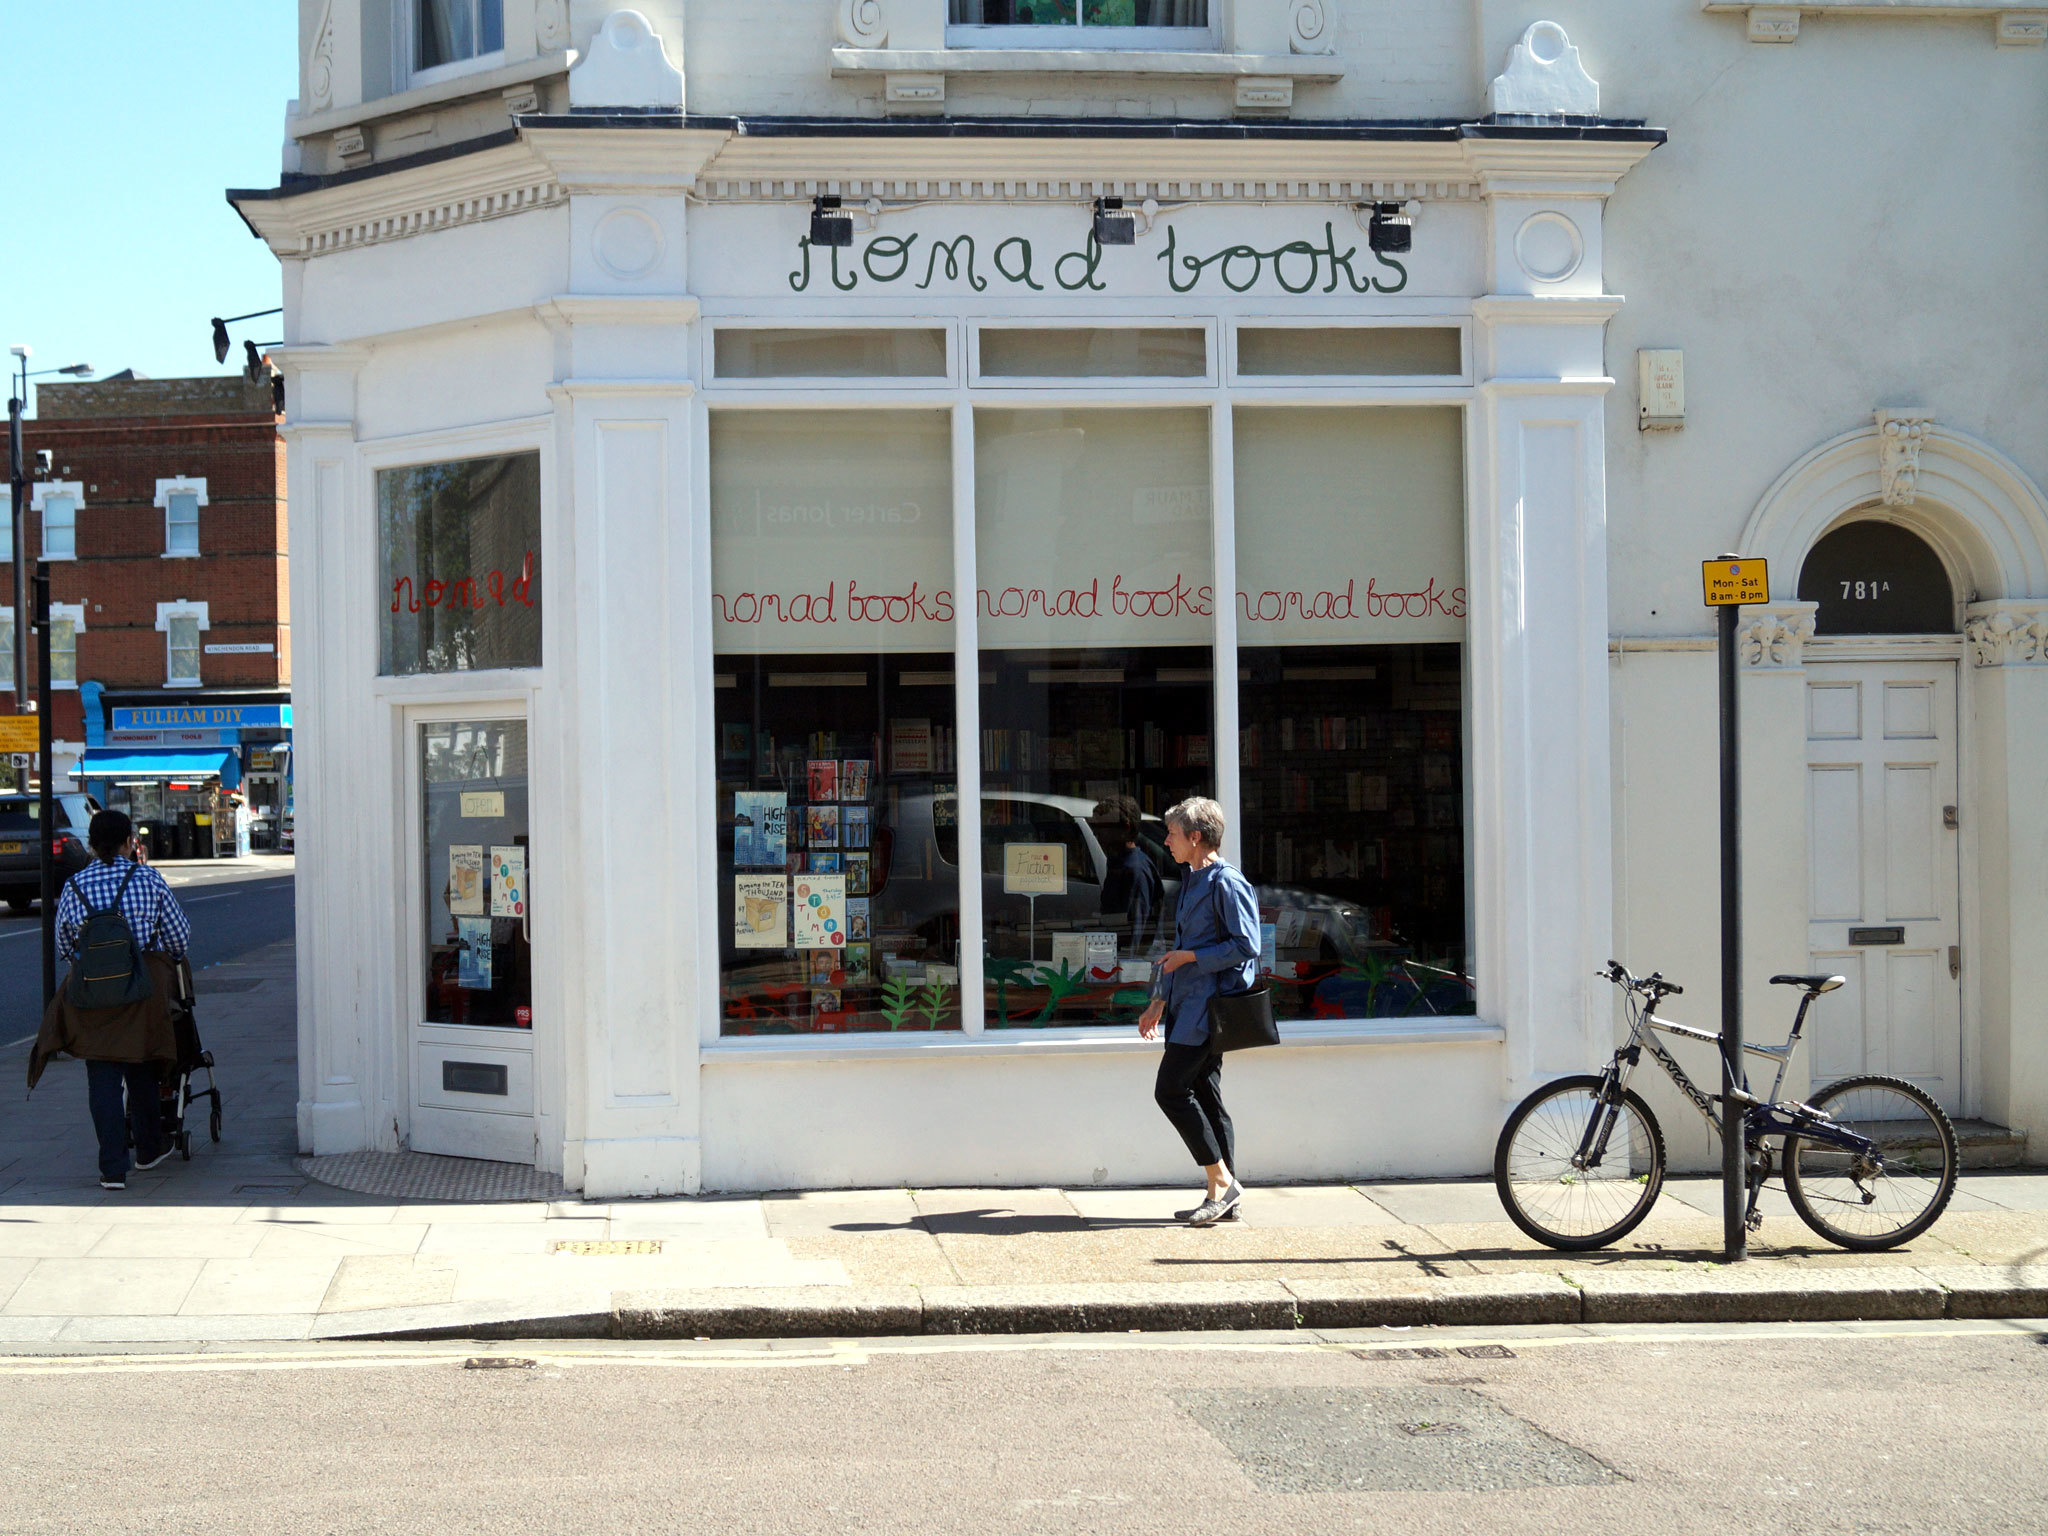 Nomad Books - Best bookshops in London